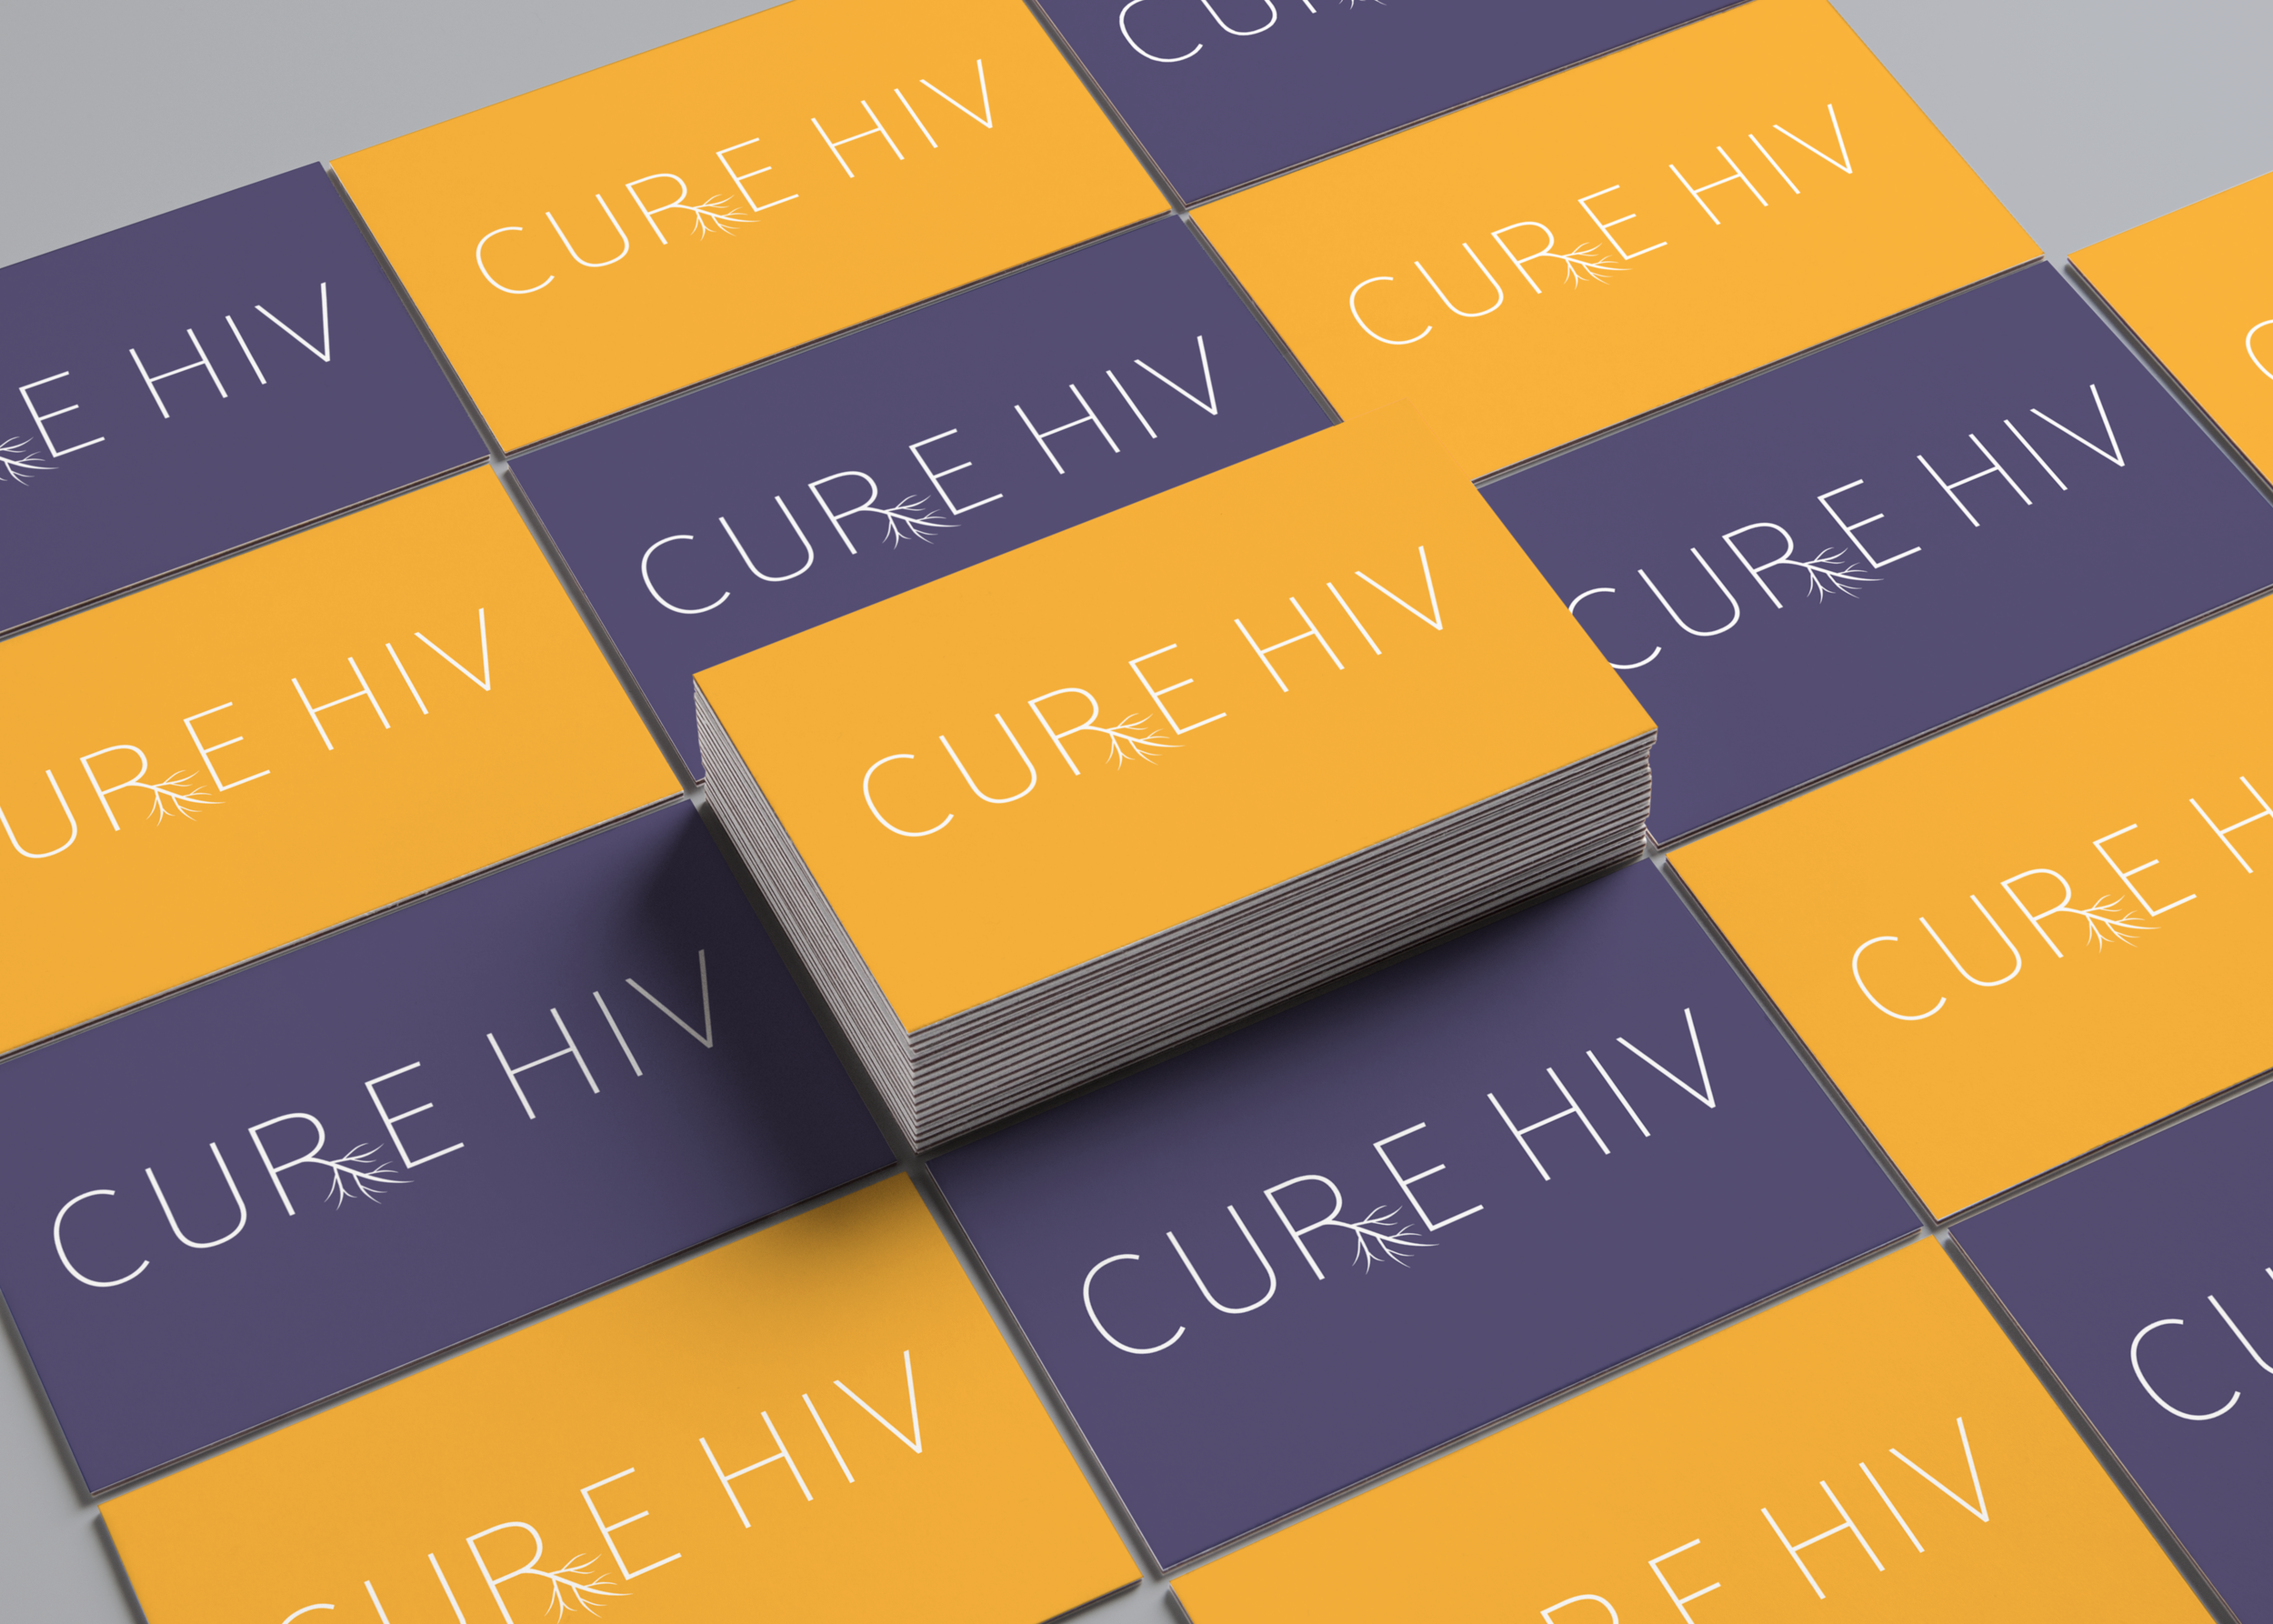 CURE HIV Bus Card Mockup.png